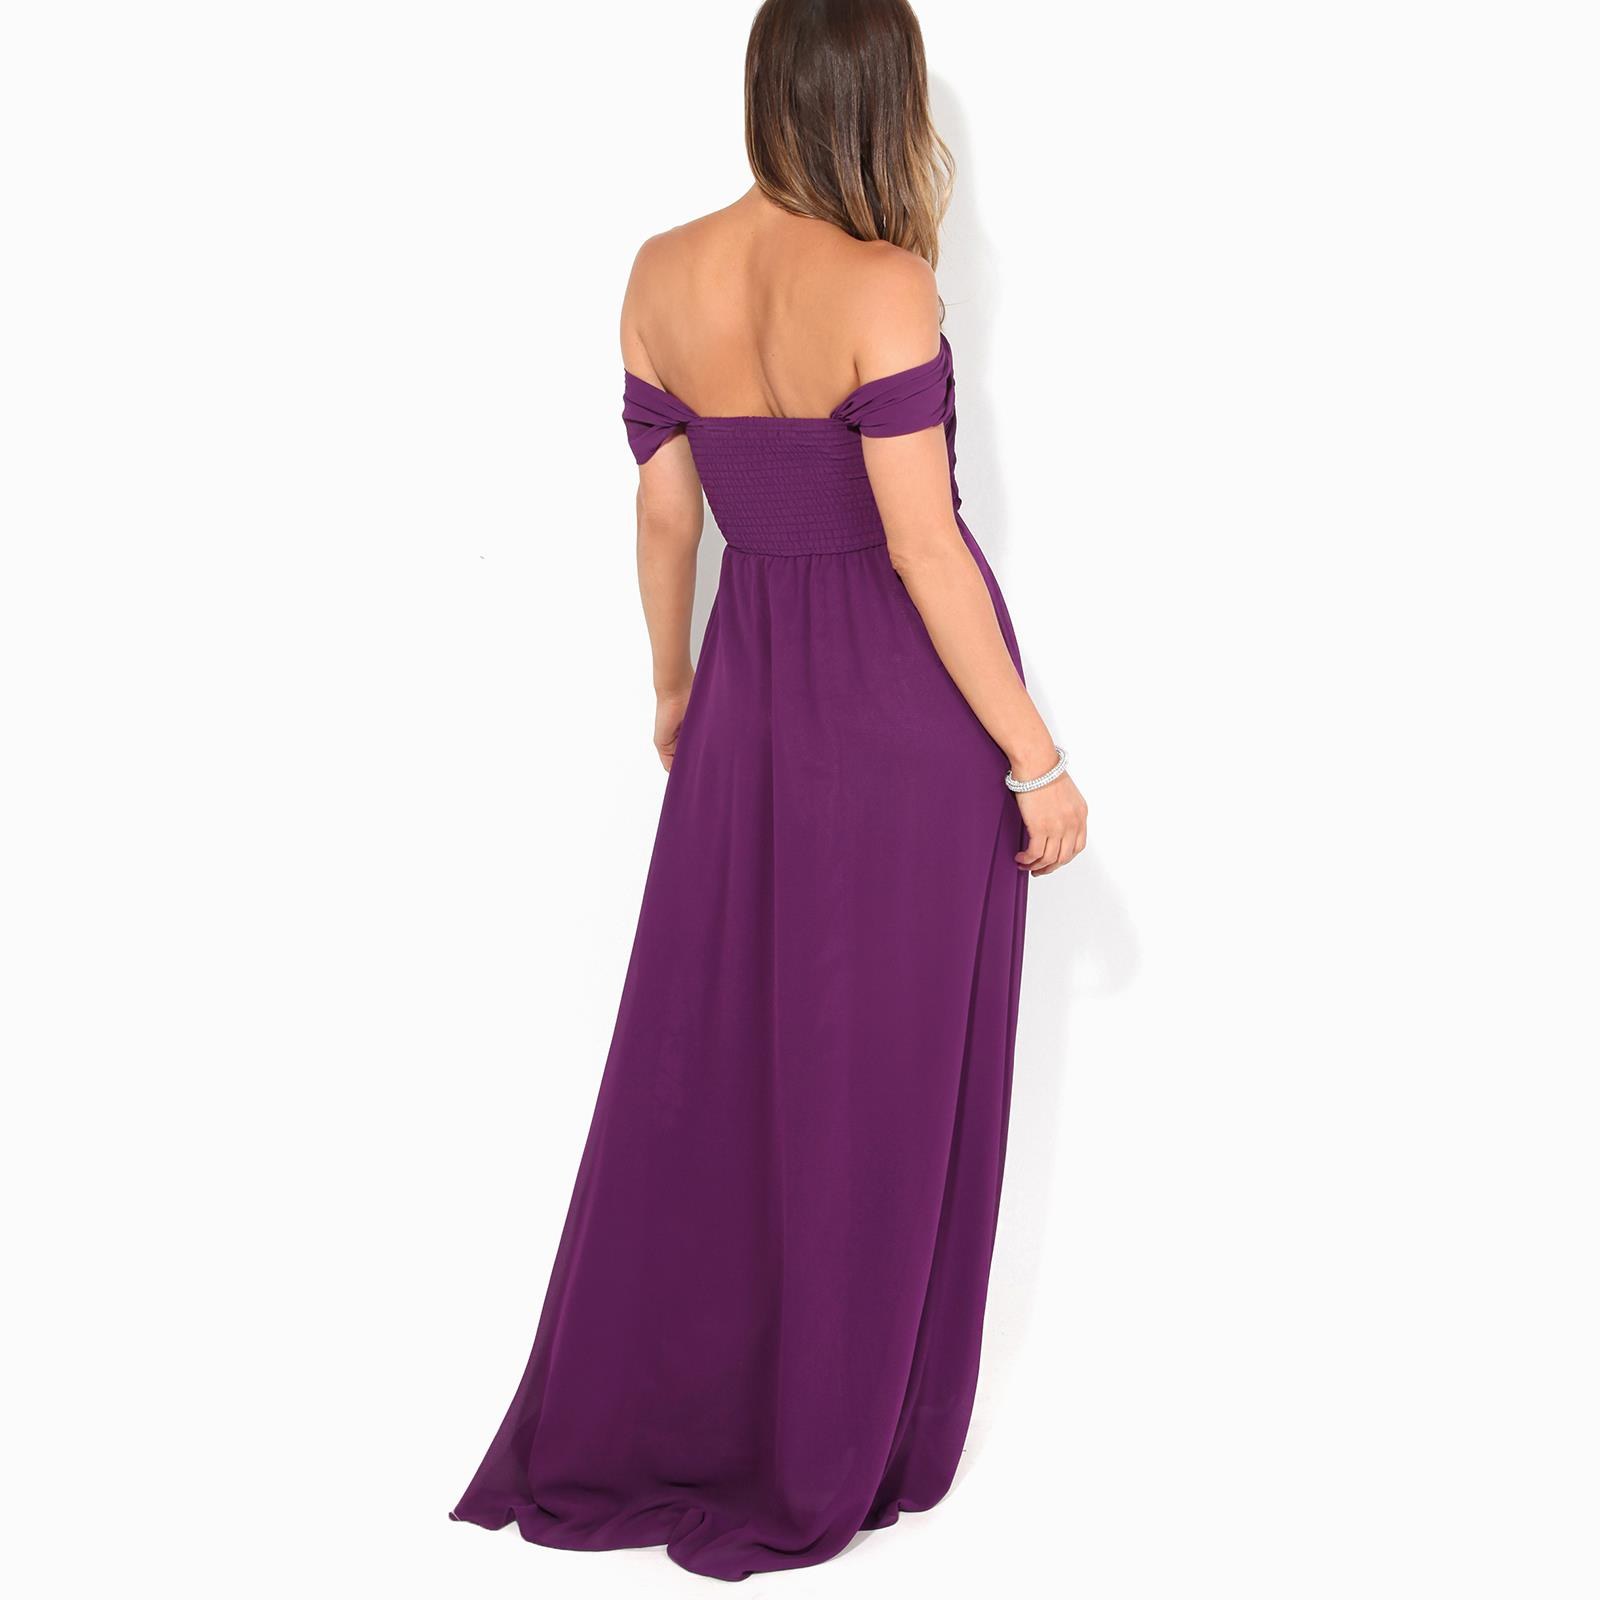 Womens-Formal-Evening-Wedding-Maxi-Prom-Dress-Long-On-Off-Shoulder-Ball-Gown thumbnail 46